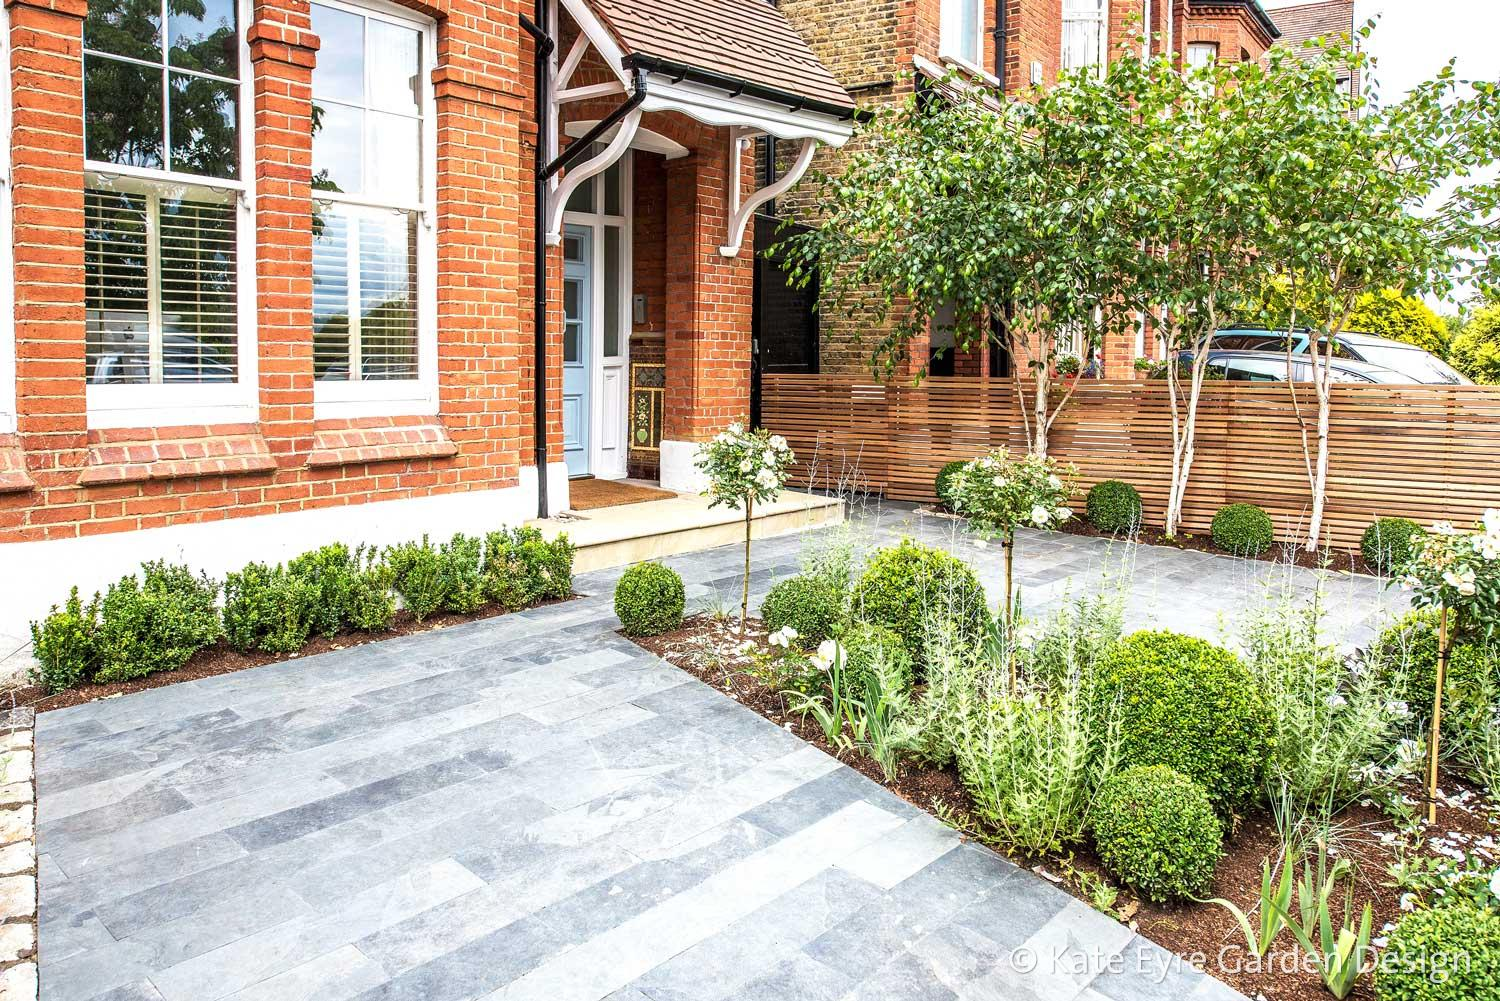 Front garden design in london by kate eyre for Front garden designs uk